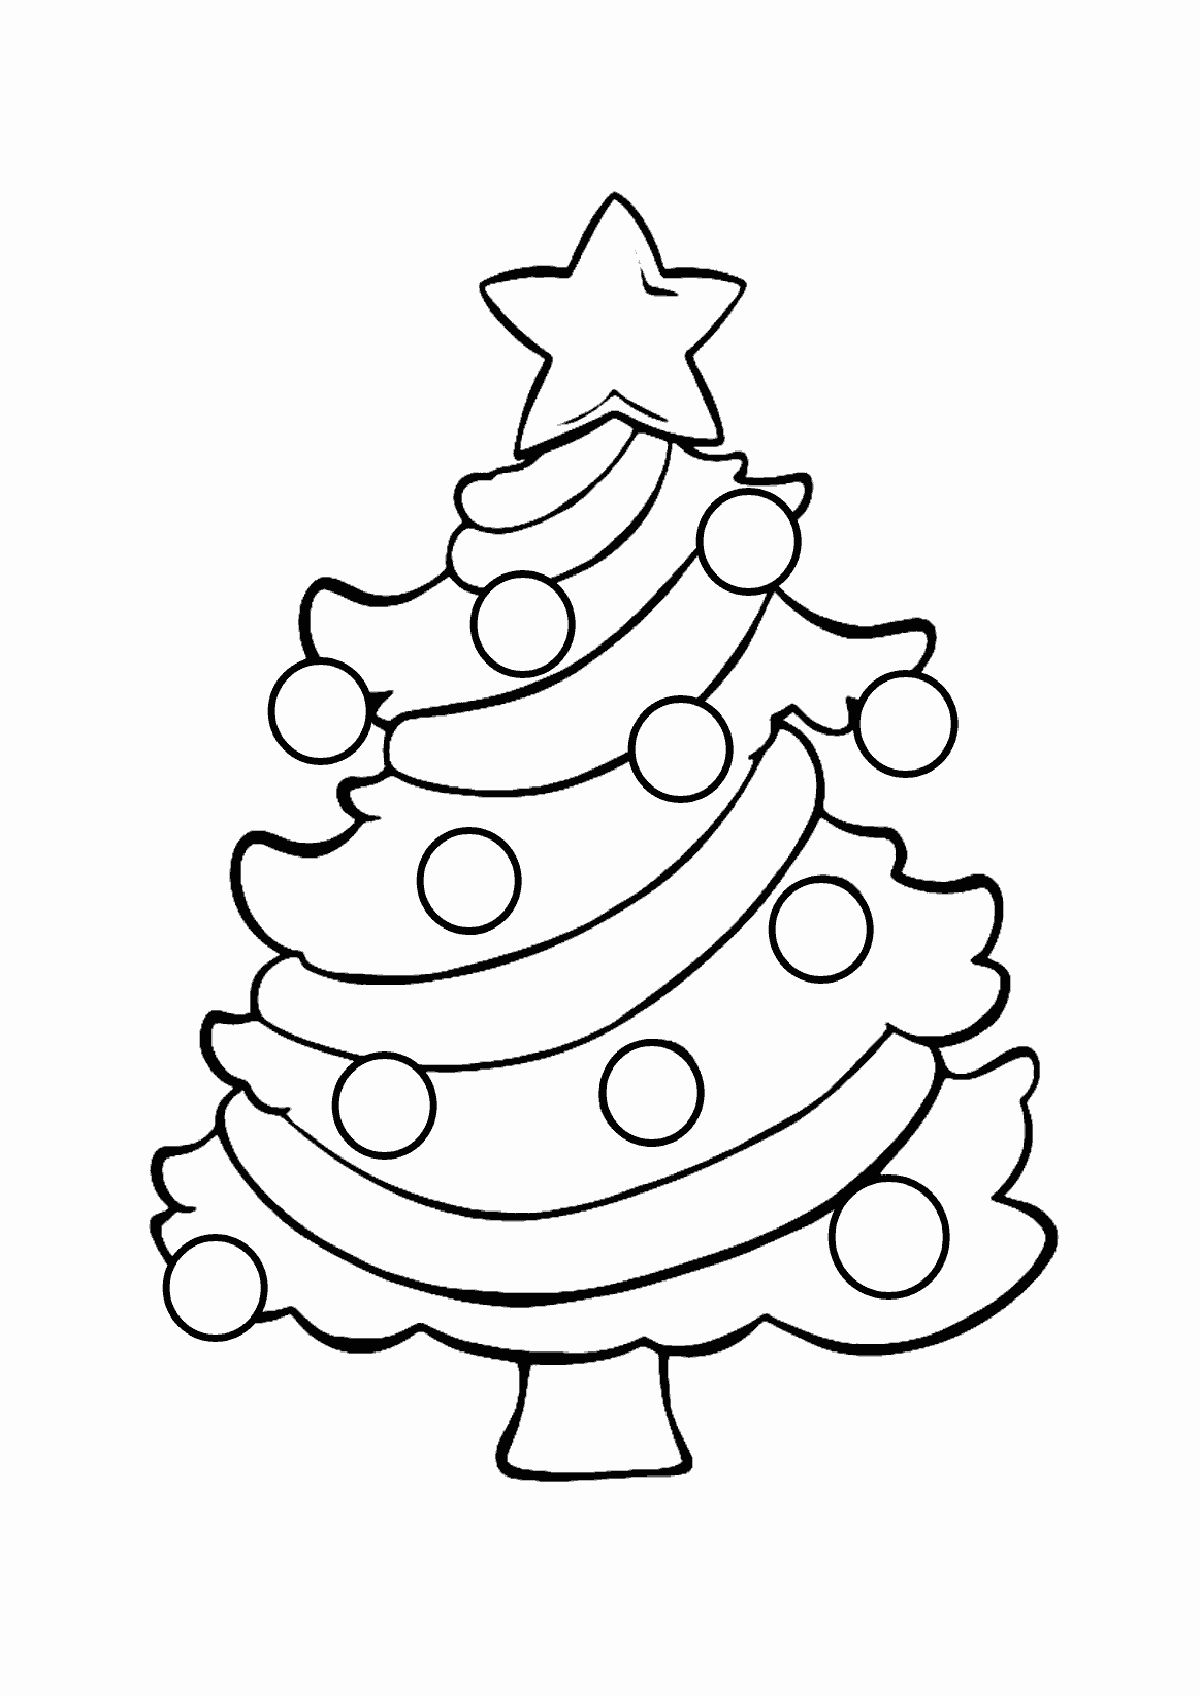 Coloring Page Christmas Tree Lovely Christmas Tree Coloring Pages For Christmas Tree Coloring Page Printable Christmas Coloring Pages Christmas Coloring Pages